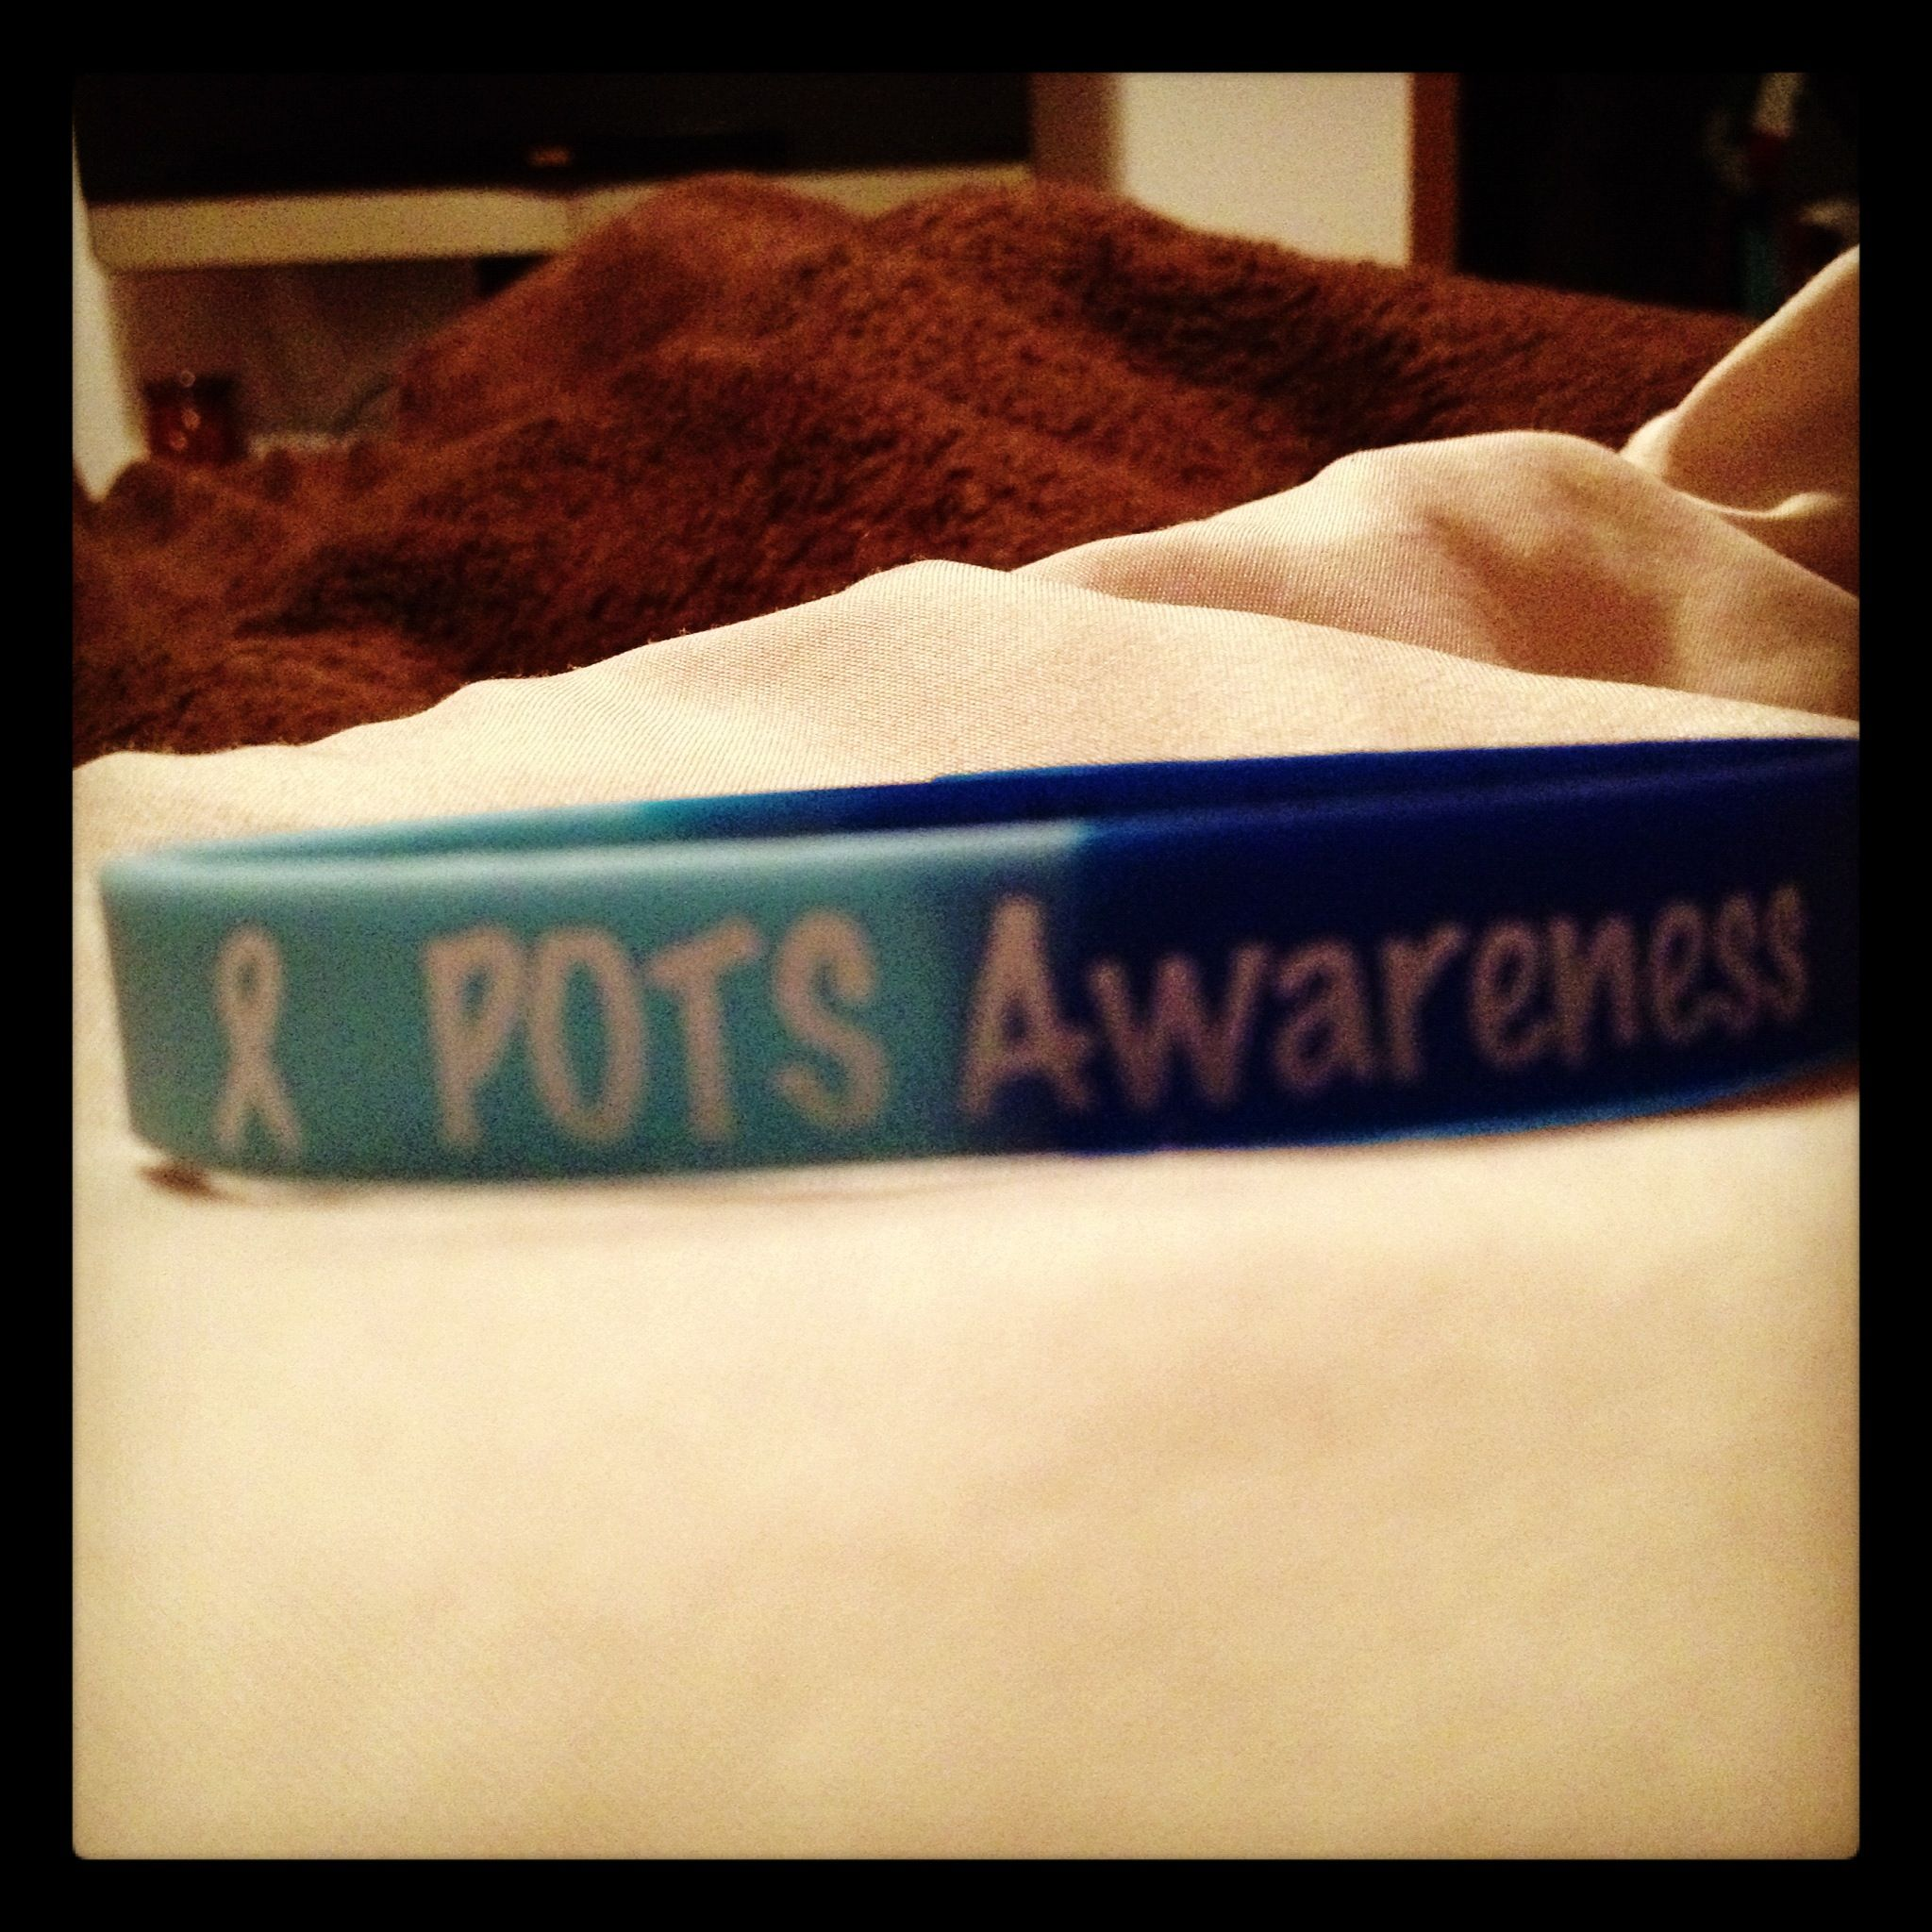 category bracelet dorothy uncategorized dysautonomia